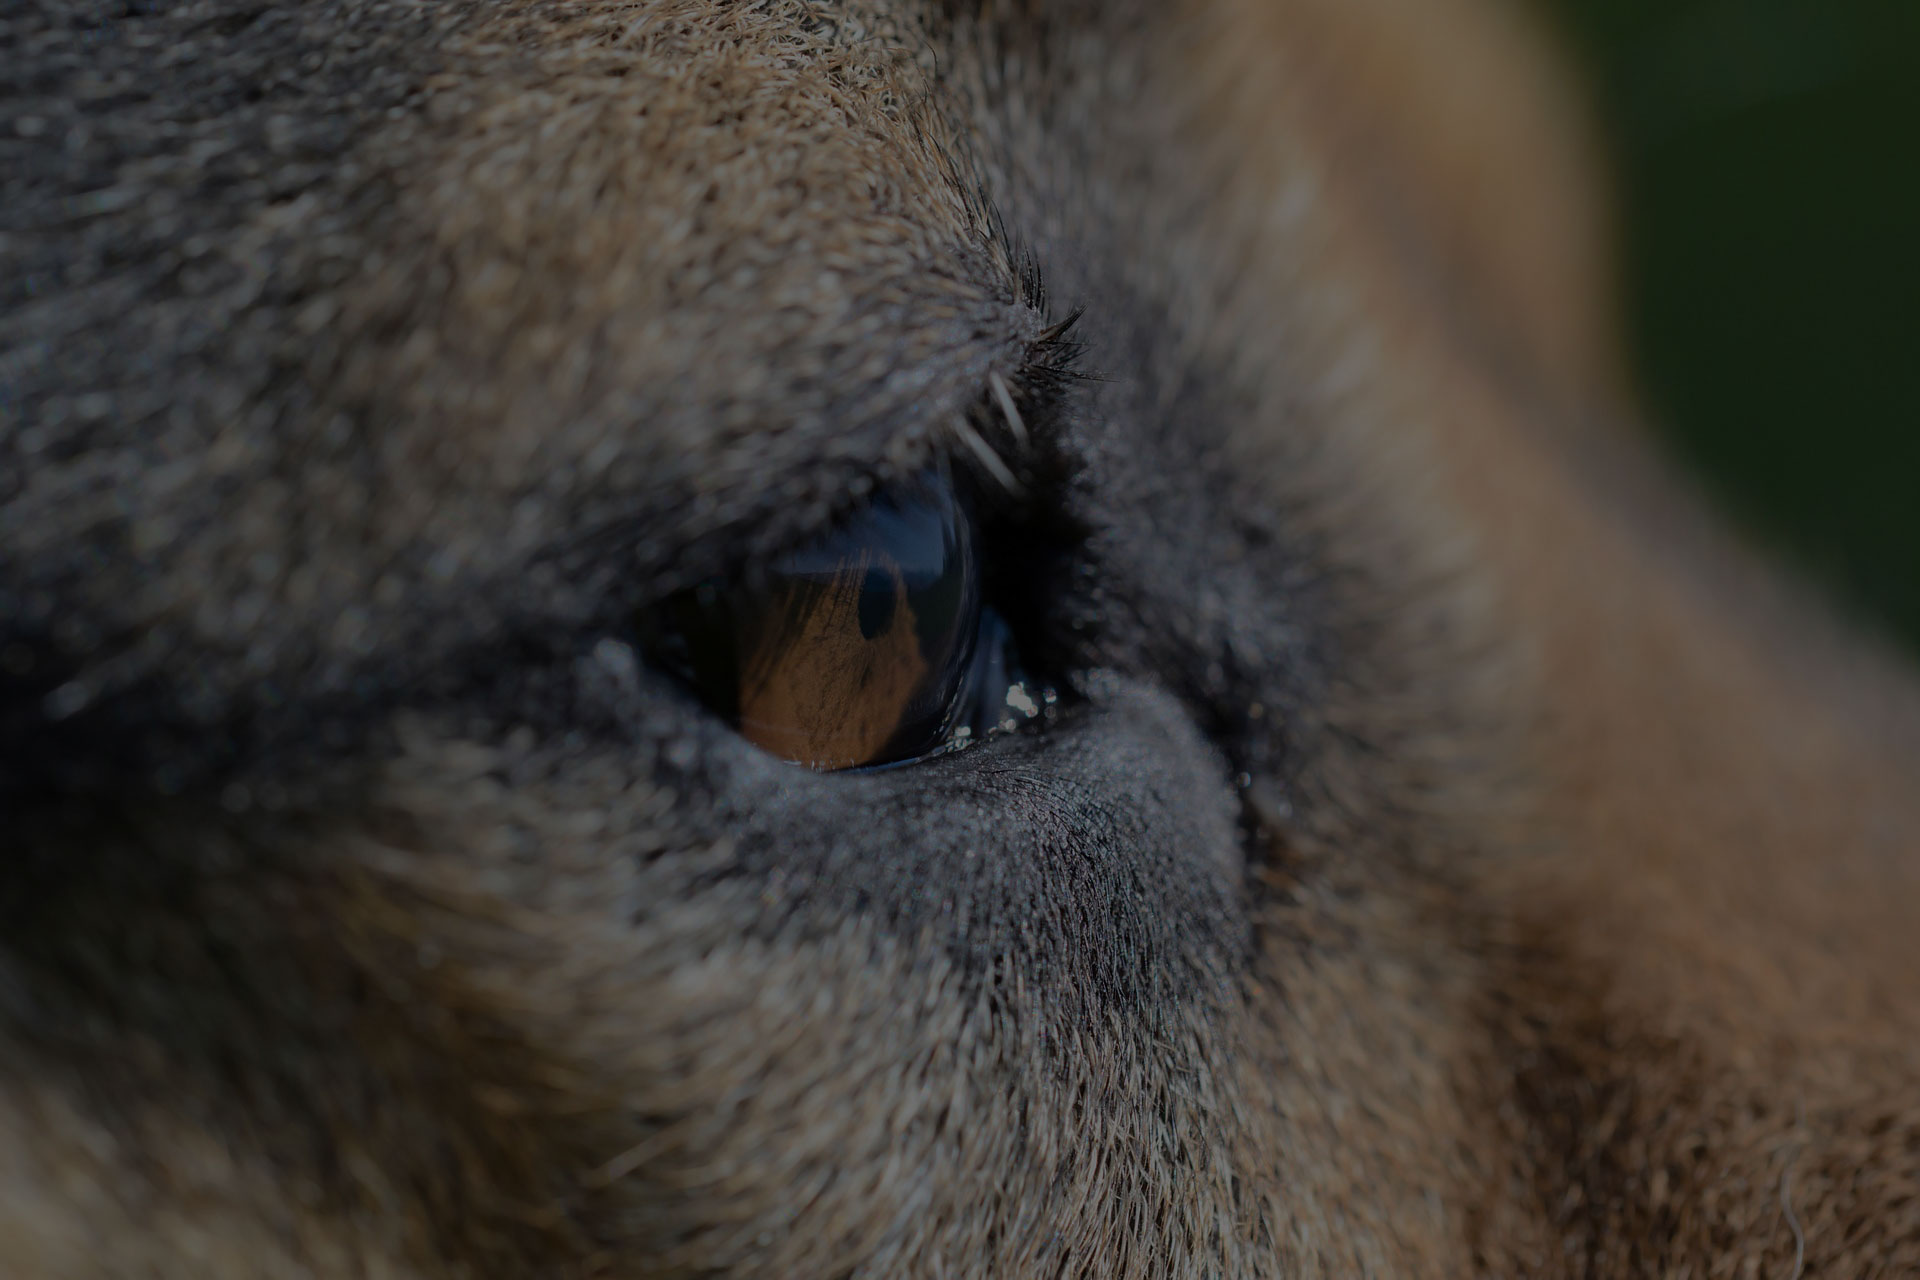 Dog Close up eye